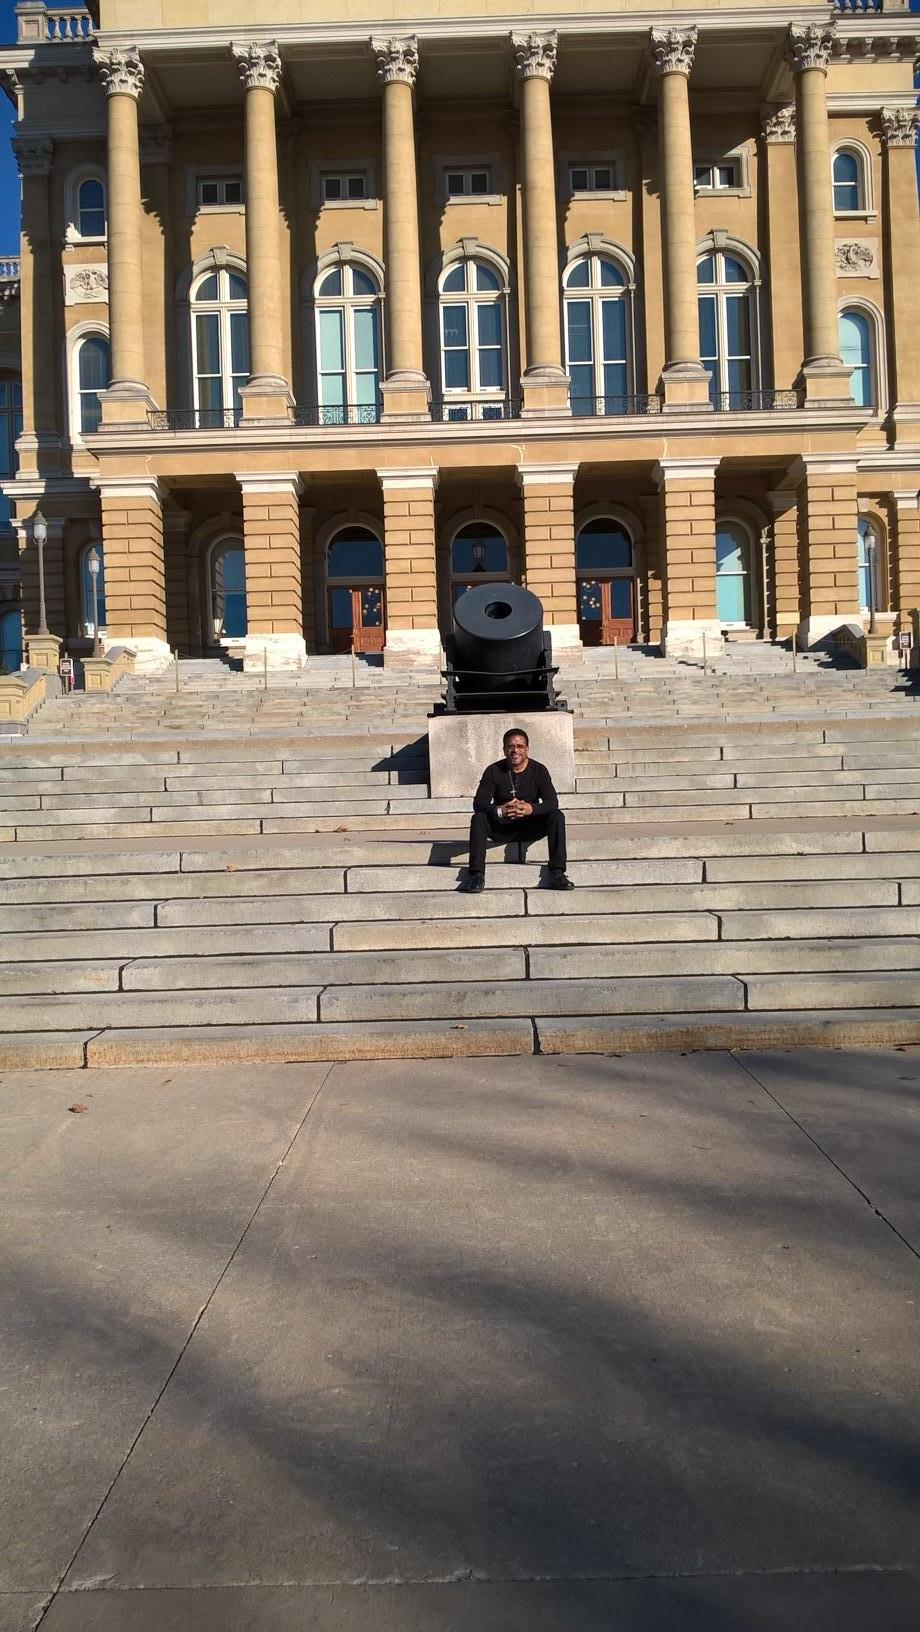 Sitting on the State Capital stairs